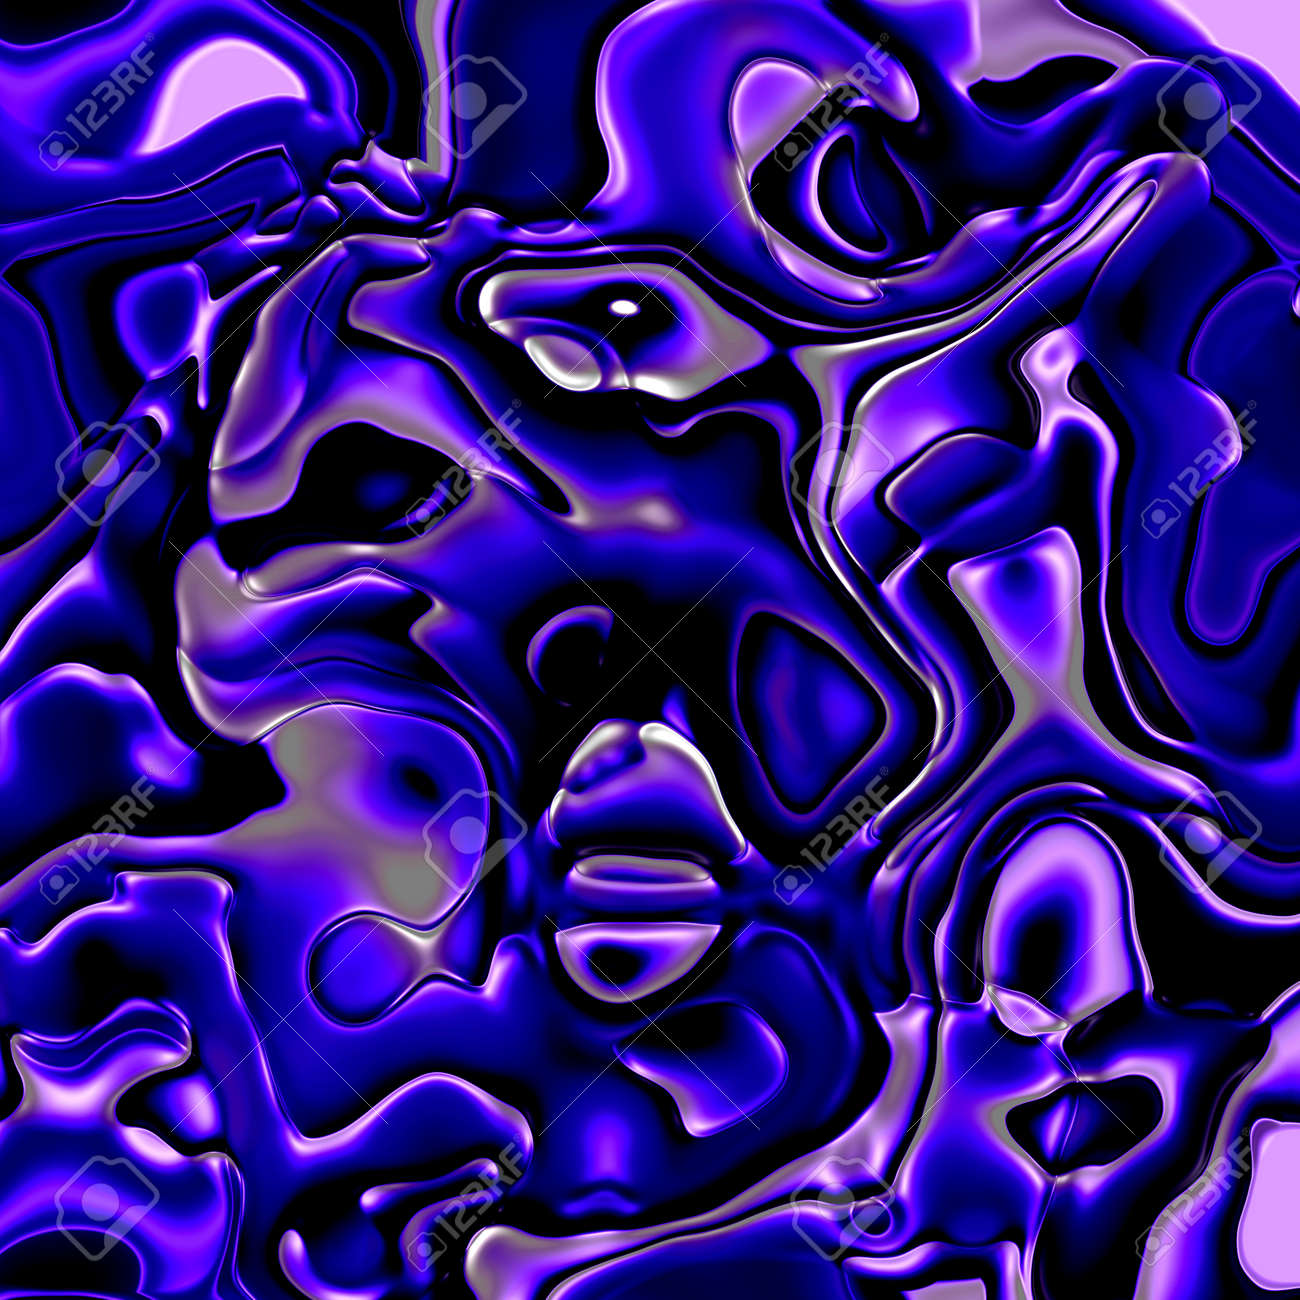 crazy abstract melted colorful shapes as wallpaper stock photo